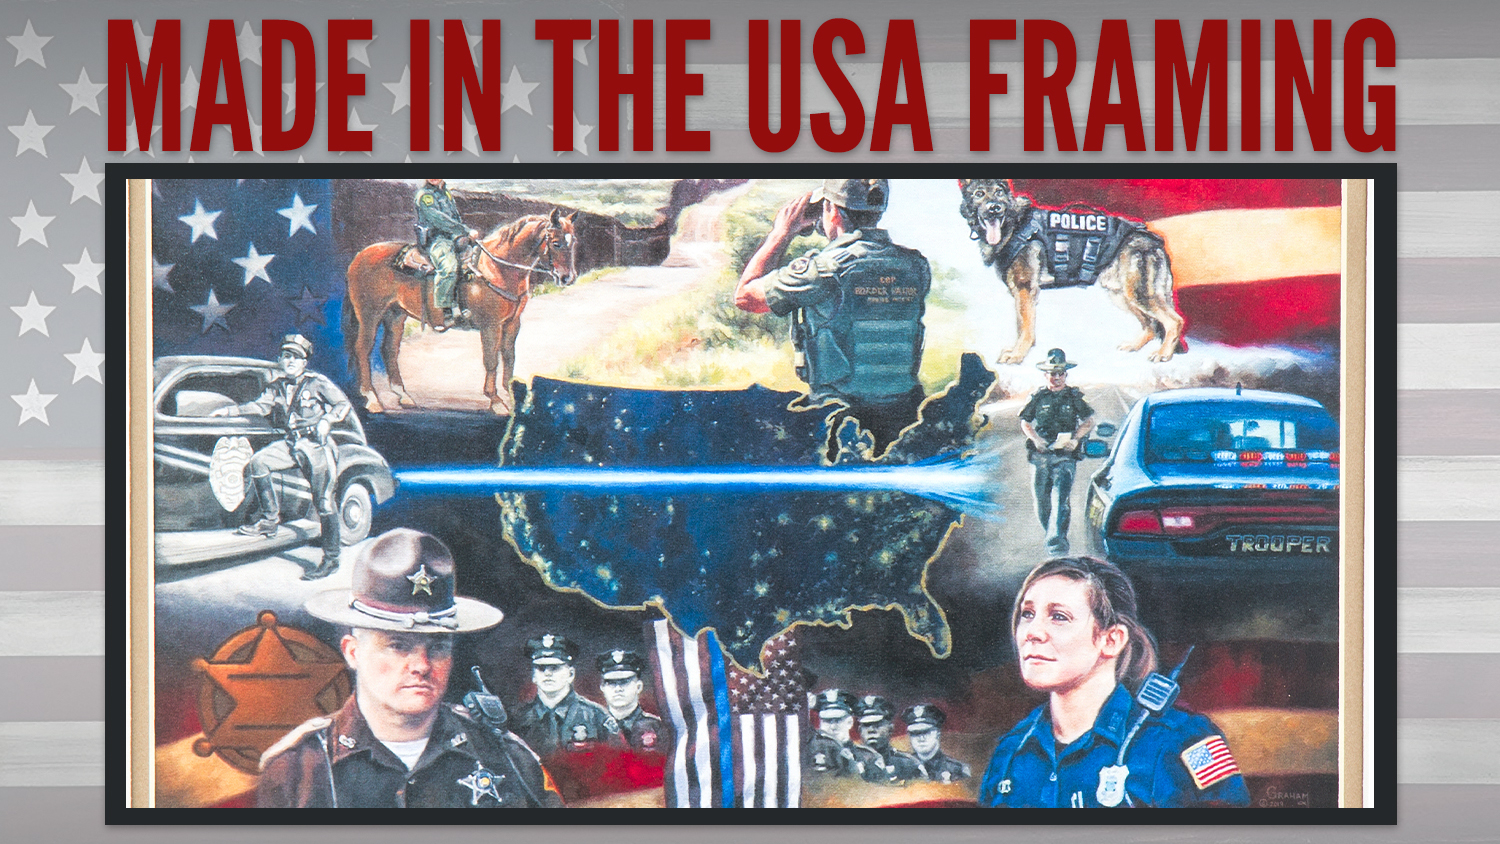 Made in the USA Framing